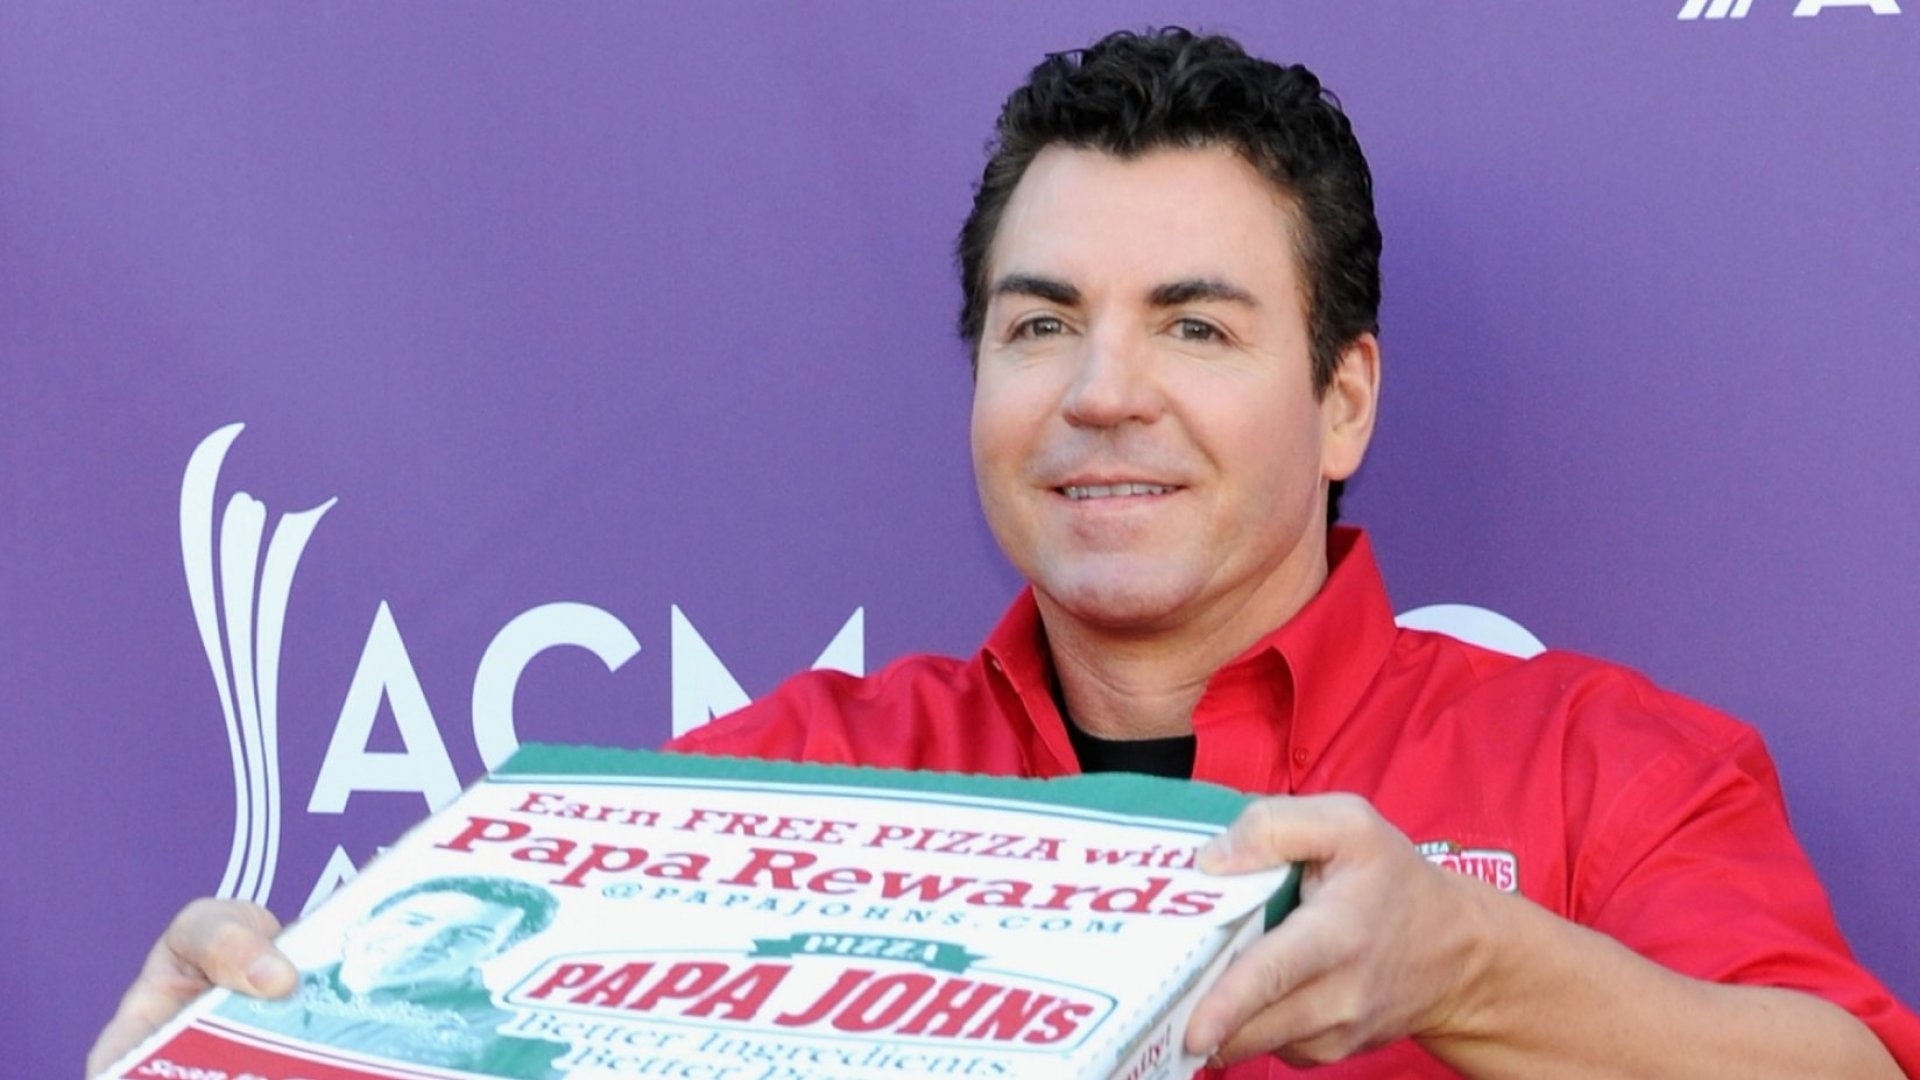 John Schnatter Quits Papa John's After Using N-Word. The Company Is Better Off Without Him